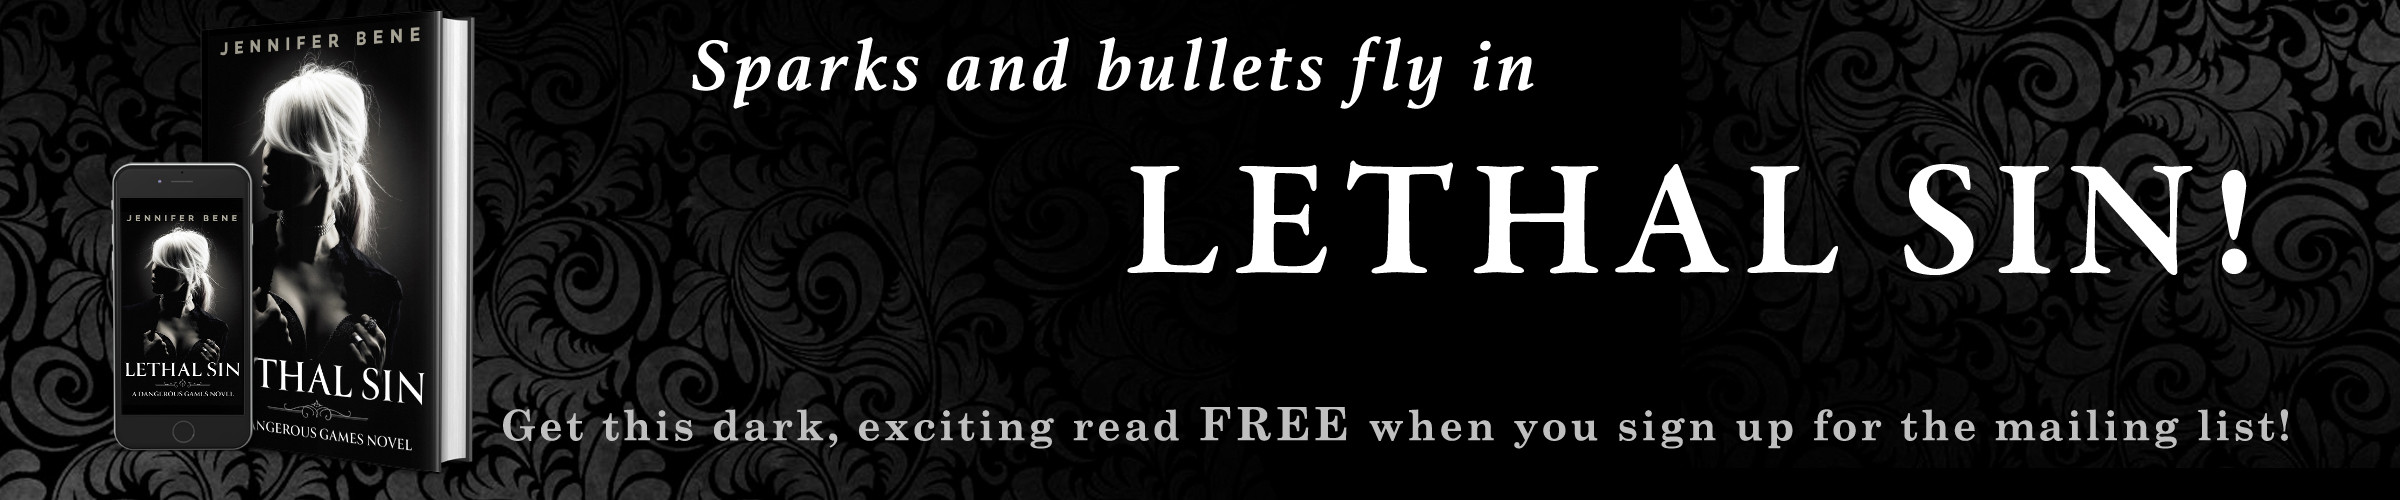 Lethal Sin free book mailing list sign up